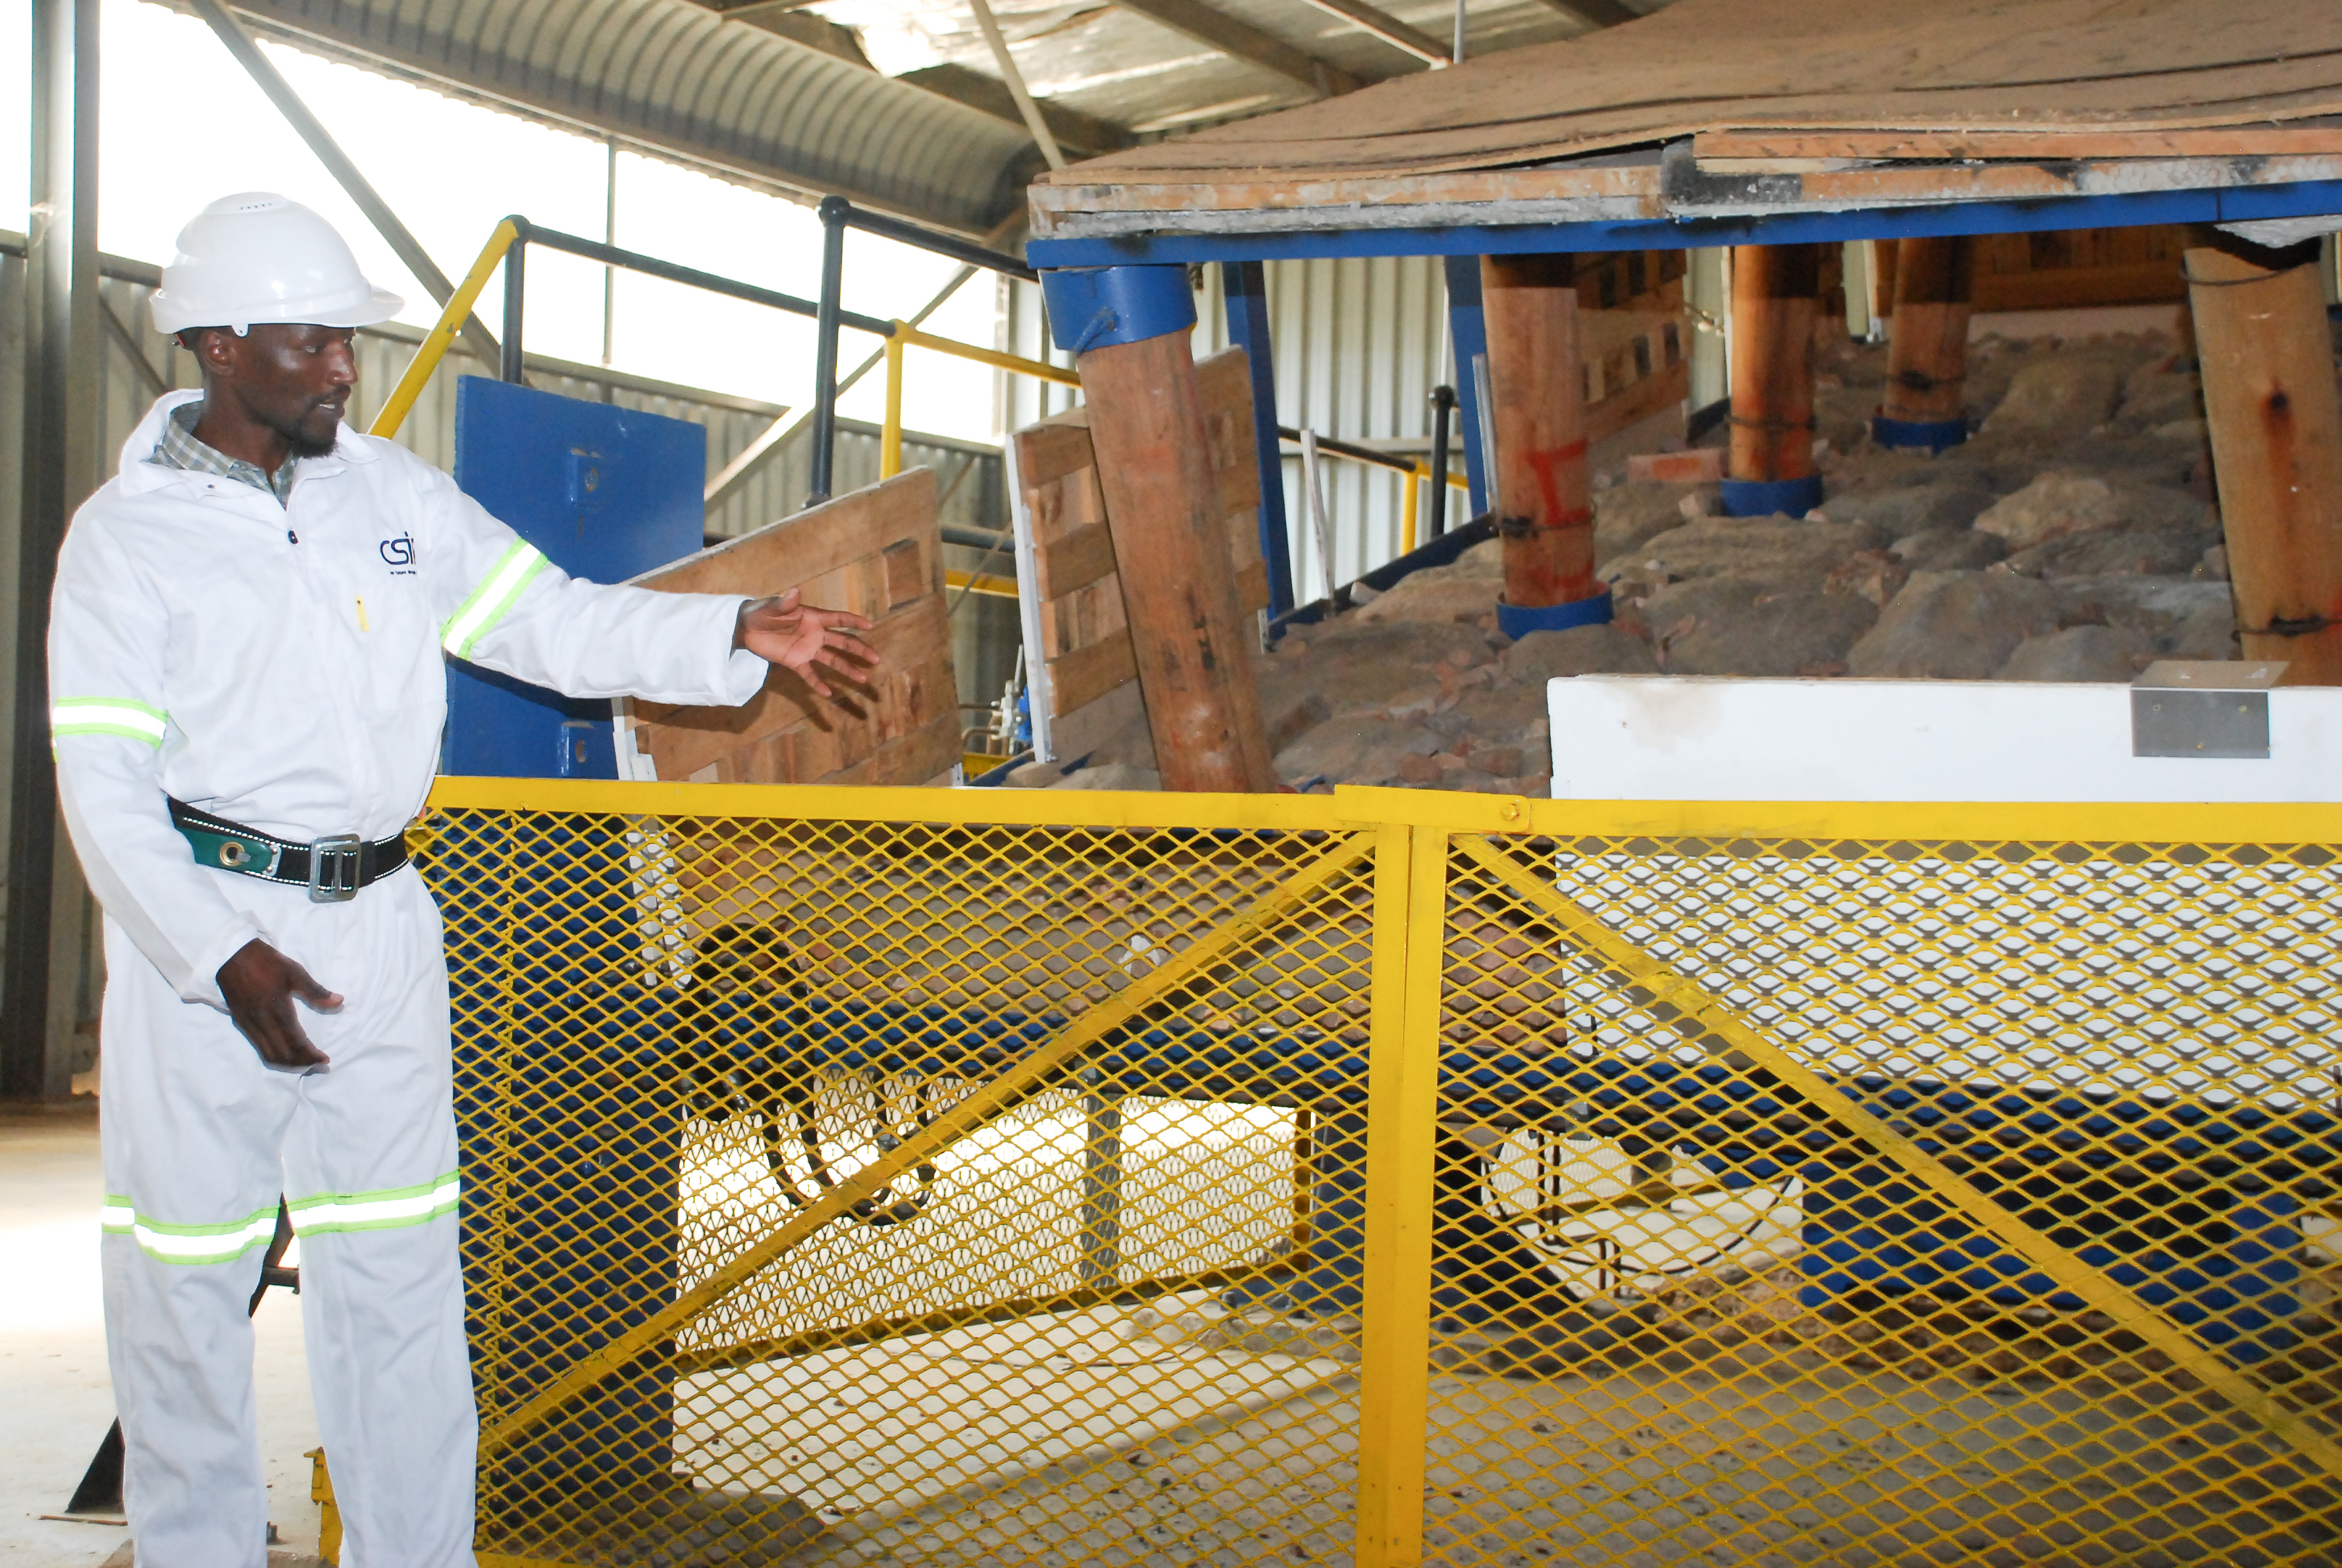 A stope simulator at the Mandela Mining Precinct where research projects can be put to the tested.